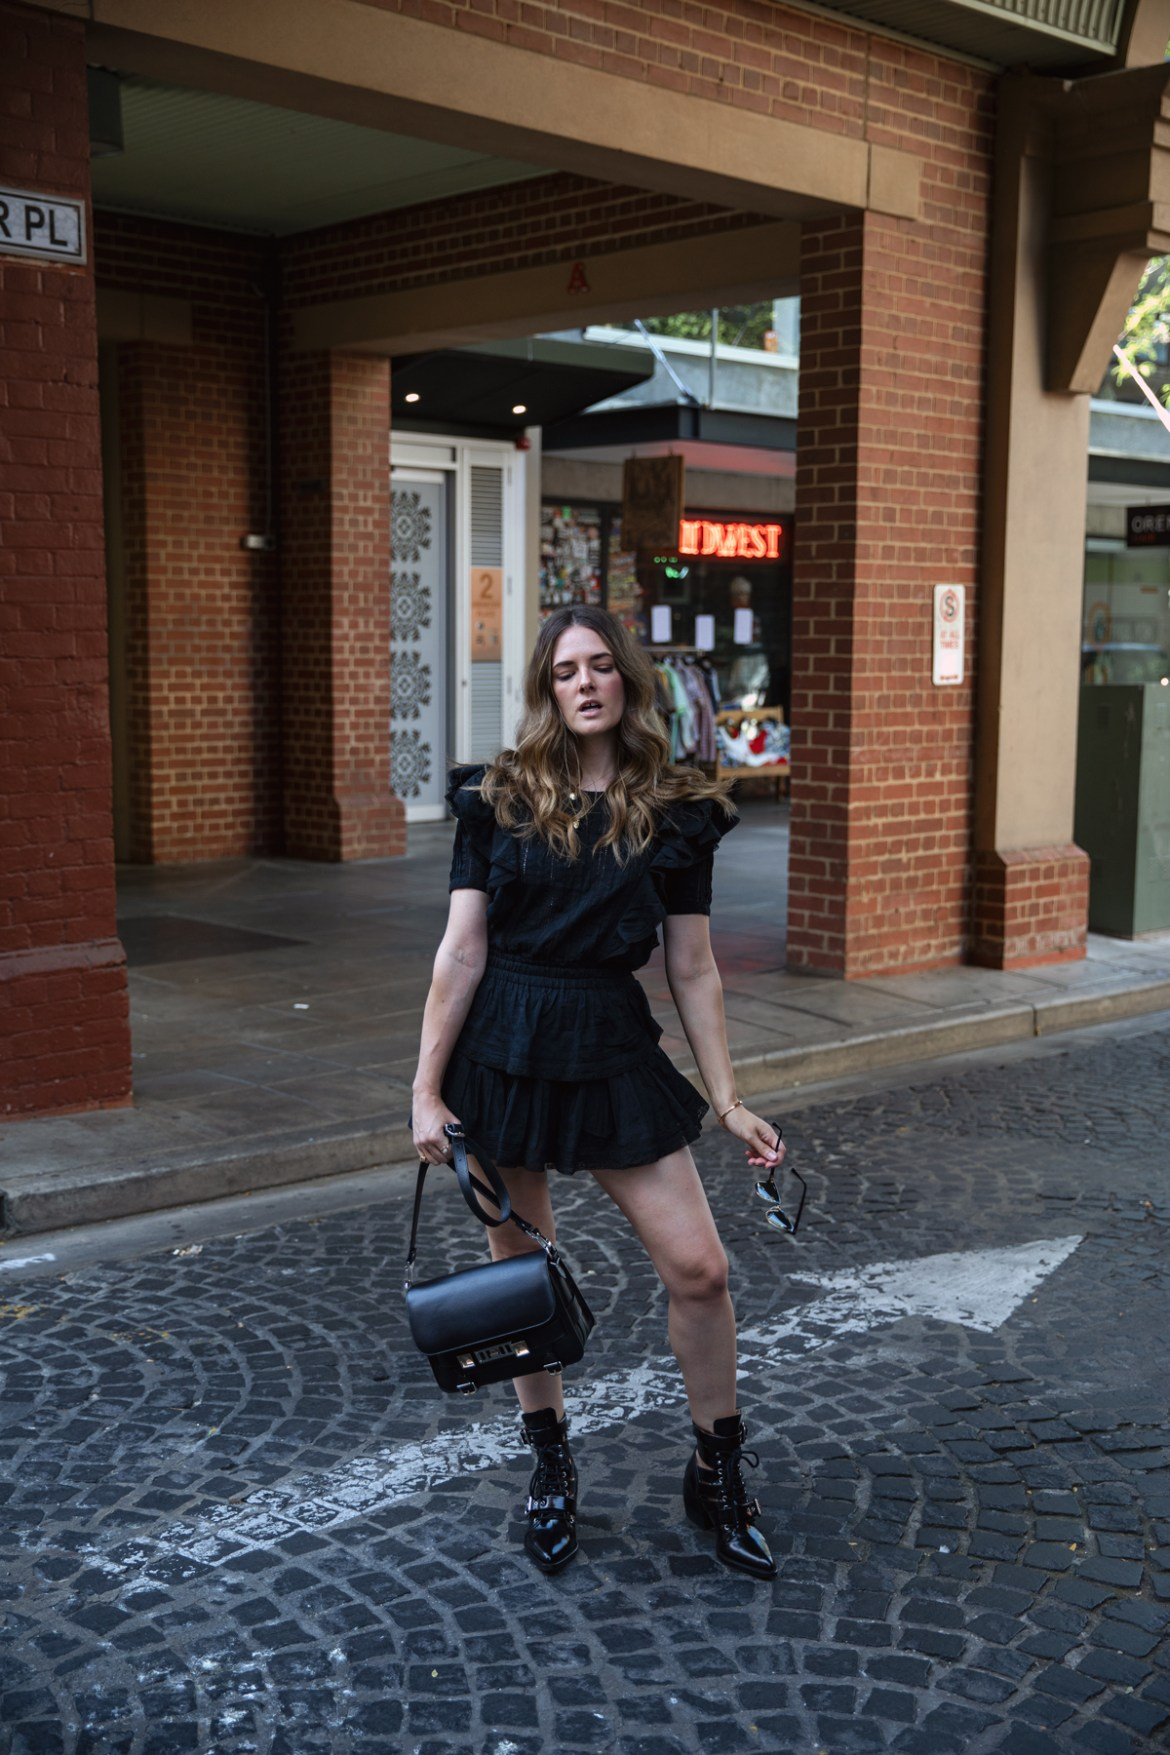 Loveshackfancy black Natasha dress worn with Chloe Rylee boots by fashion blogger Jenelle Witty from Inspiring Wit in Adelaide